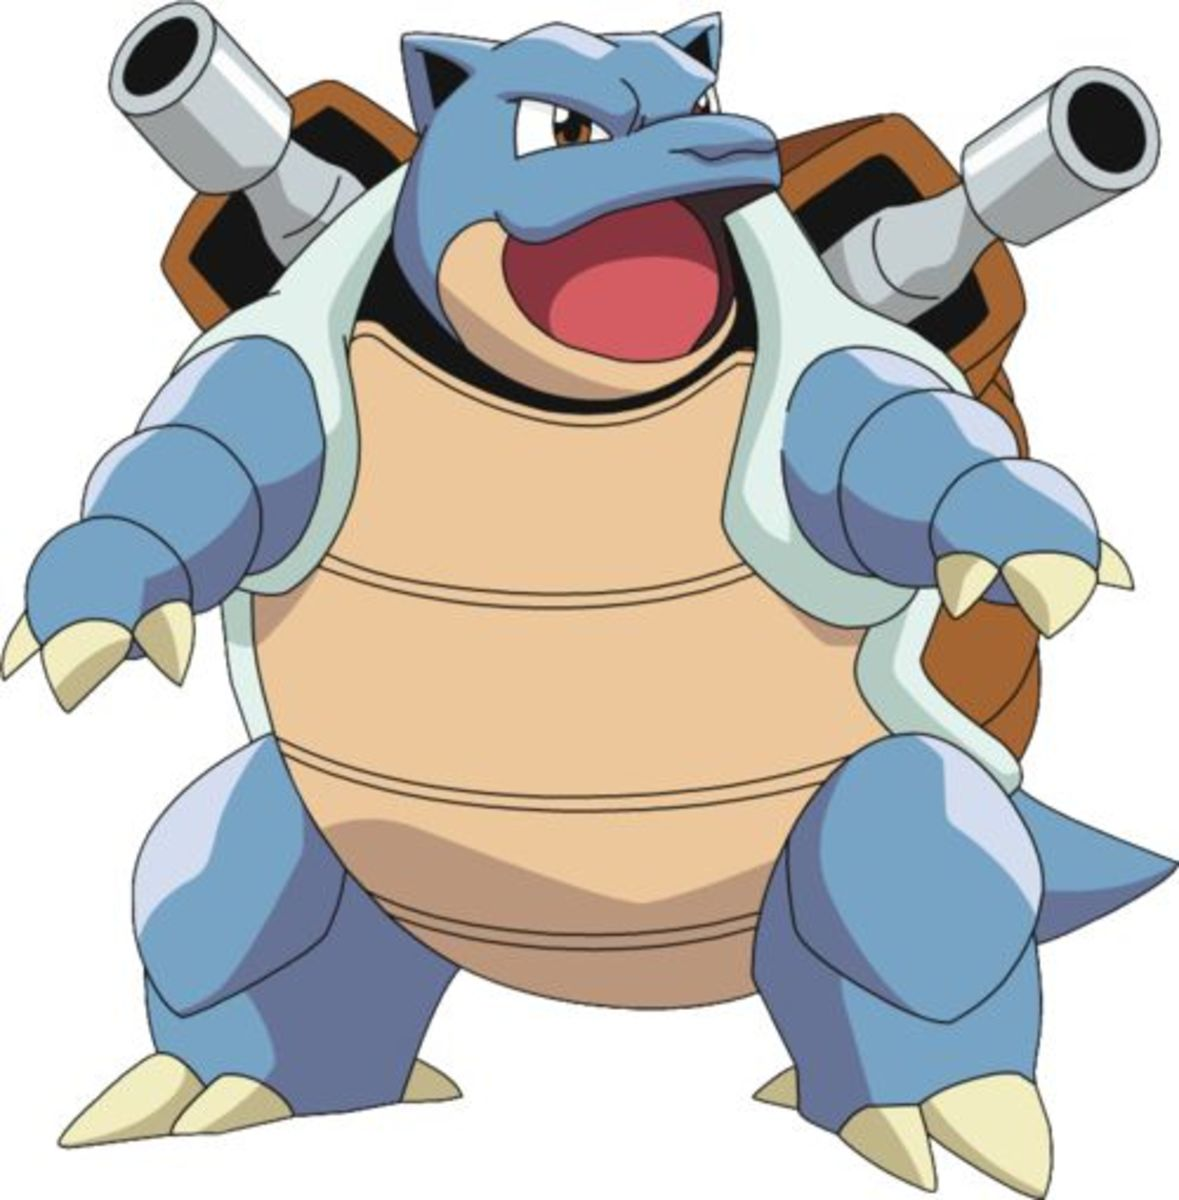 pokémon blastoise nicknames hubpages